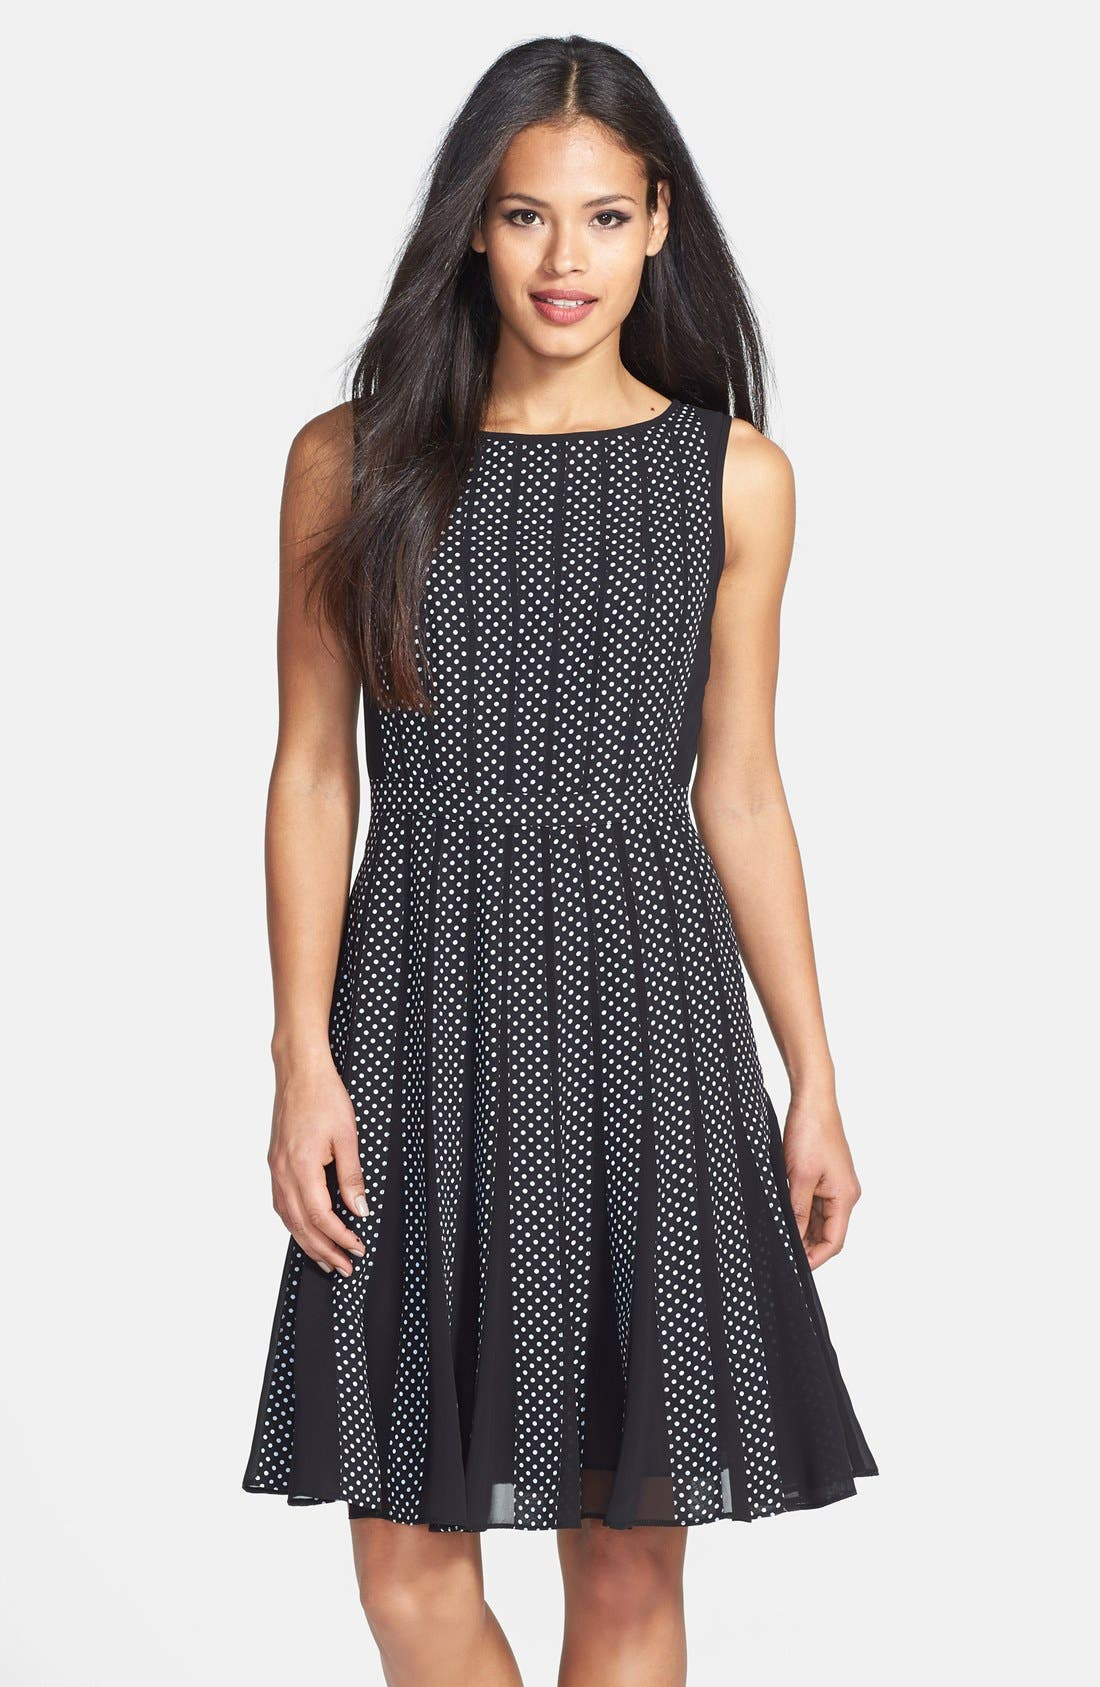 Alternate Image 1 Selected - Adrianna Papell Polka Dot Chiffon Fit & Flare Dress